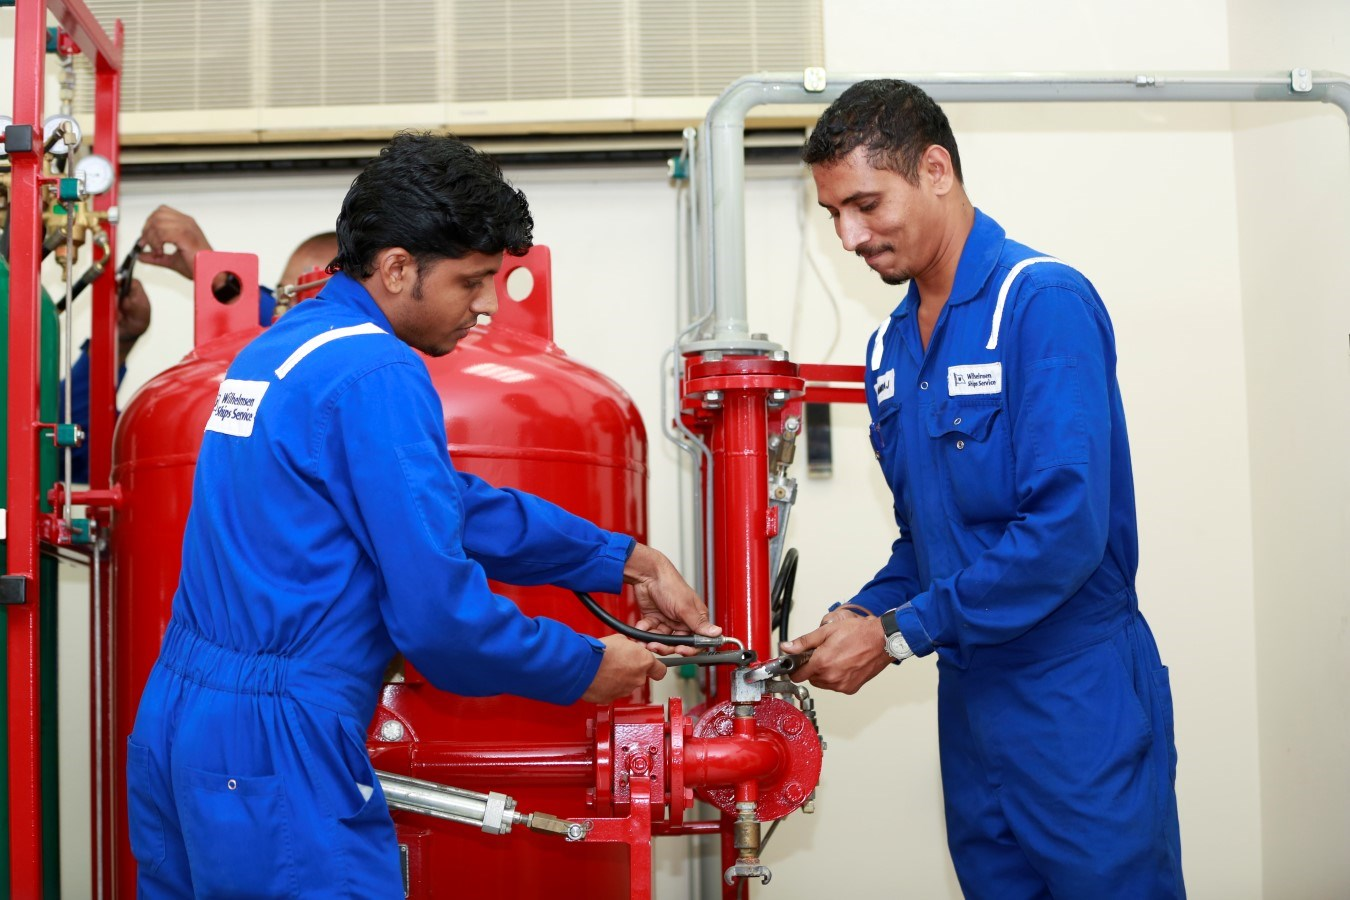 WSS trains its technicians